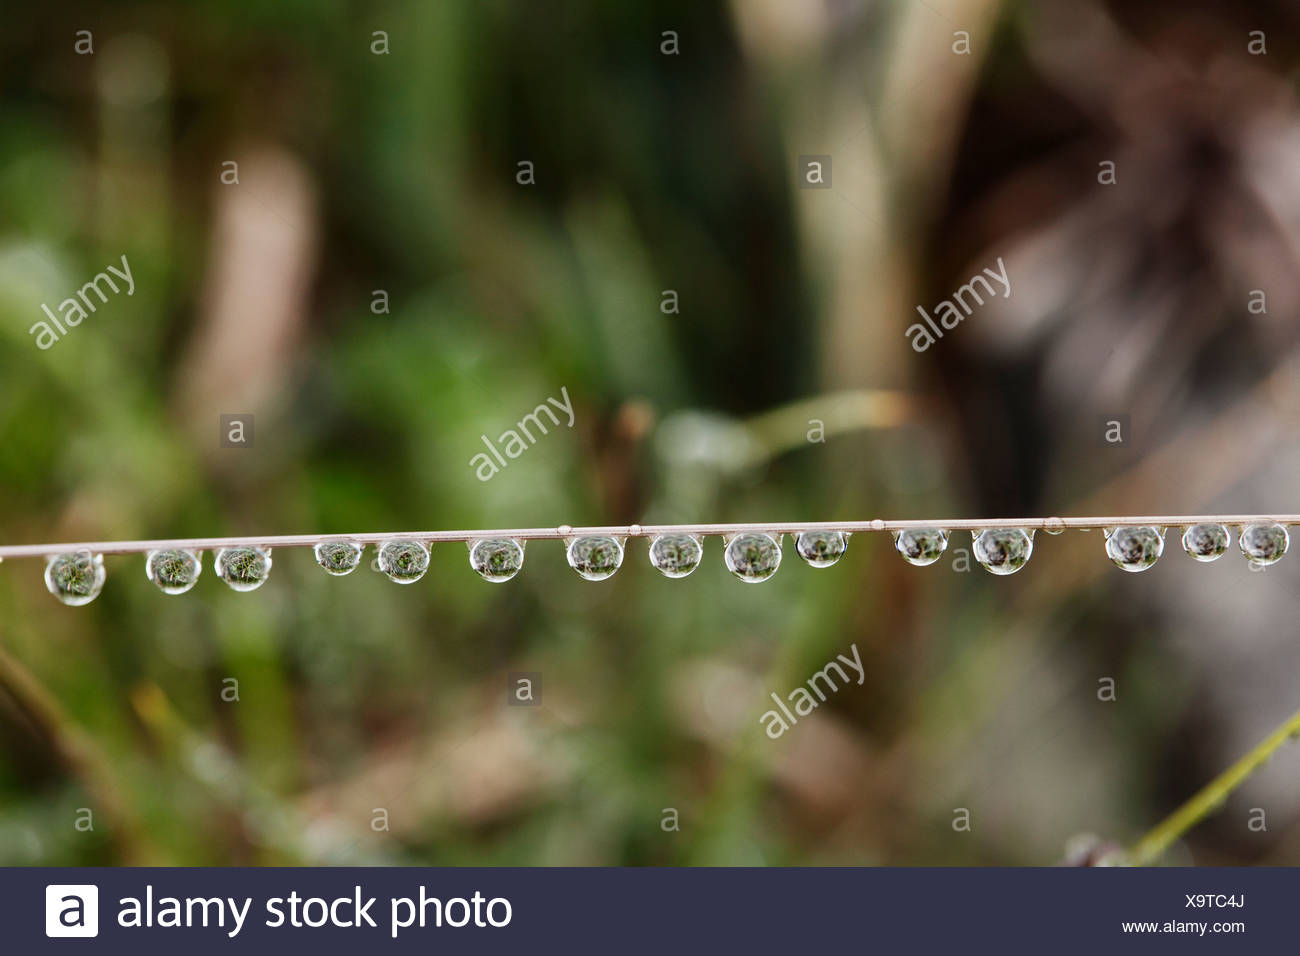 Water drops on a blade of grass, Ireland, Europe - Stock Image